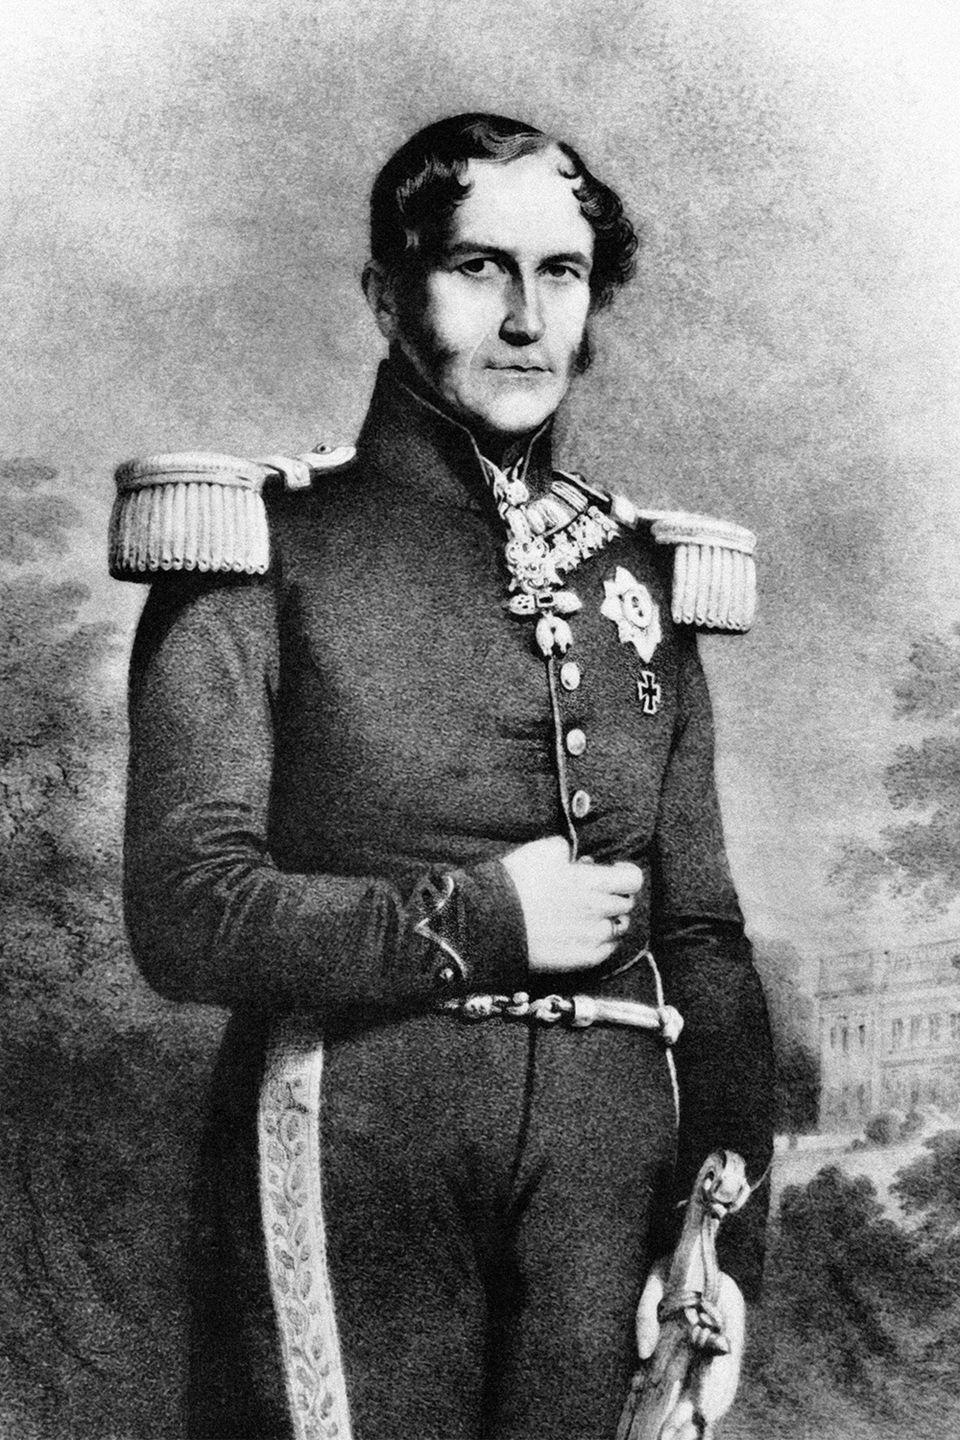 "<p>While it was only a rumor that King Leopold I was Prince Albert's dad, it was confirmed that the king fathered two other children out of wedlock—George and Arthur. Leopold's mistress Arcadie Meyer gave birth to George in 1849, and Arthur just three years later in 1852. Both sons were granted the title ""<a href=""https://en.wikipedia.org/wiki/Leopold_I_of_Belgium"" rel=""nofollow noopener"" target=""_blank"" data-ylk=""slk:Freiherr von Eppinghoven"" class=""link rapid-noclick-resp"">Freiherr von Eppinghoven</a>"" in 1862 by the king's nephew Ernest II, Duke of Saxe-Coburg and Gotha.</p>"